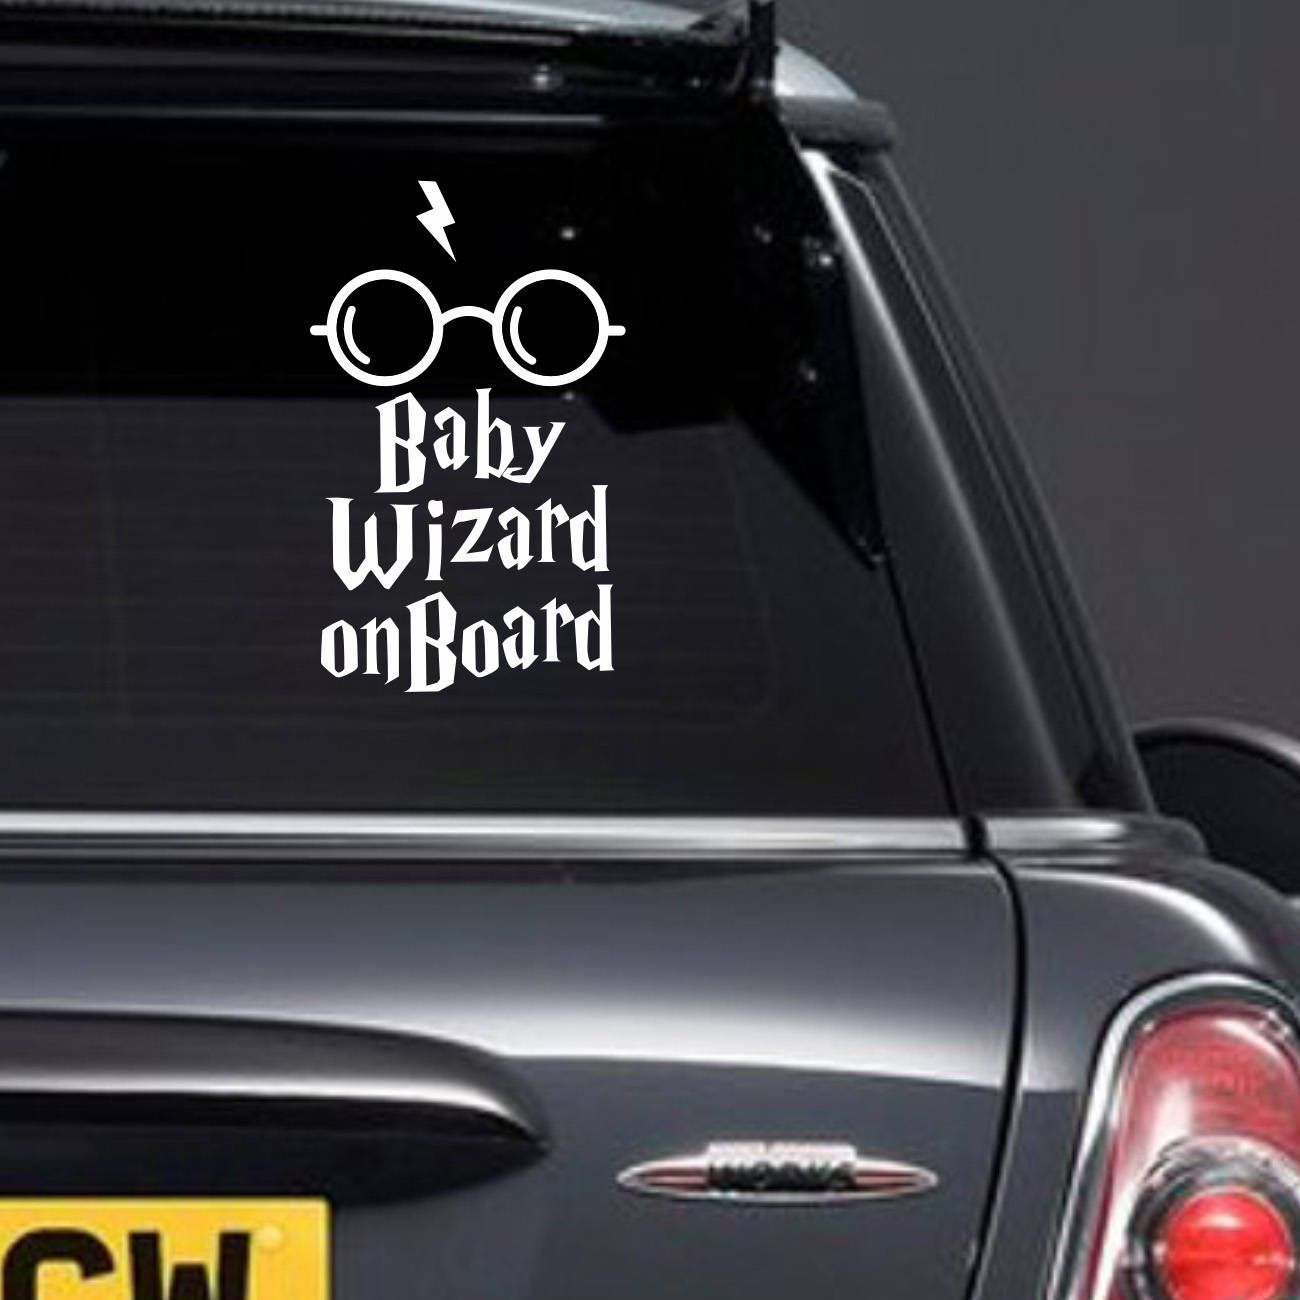 Baby Wizard On Board Car Sticker Car Window Decal New Baby Etsy New Baby Products Family Decals Harry Potter Decal [ 1300 x 1300 Pixel ]